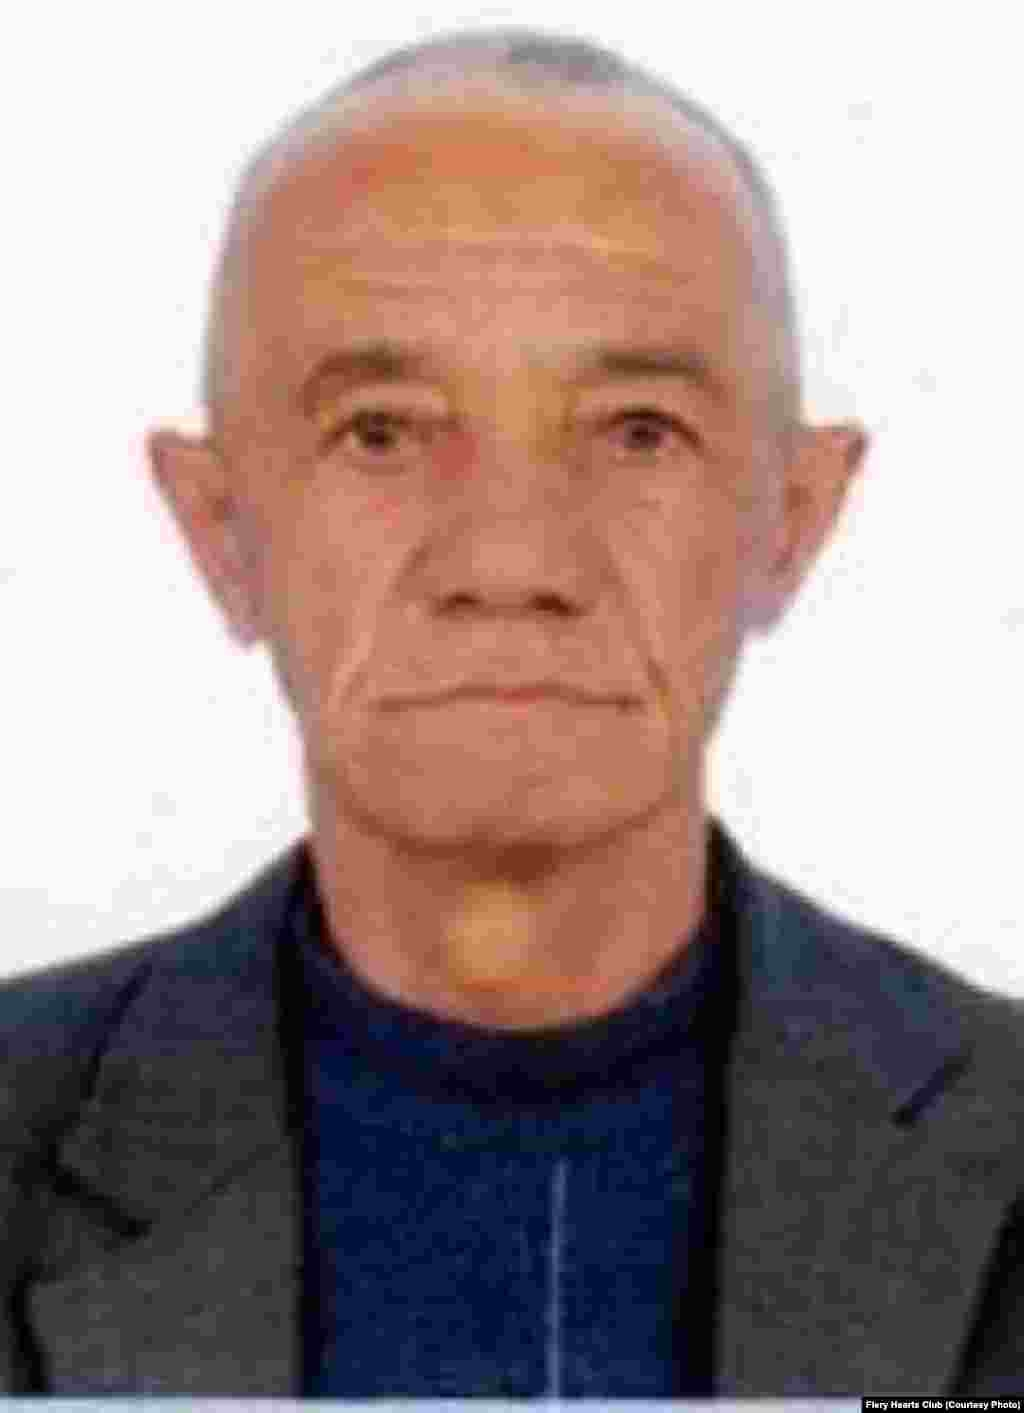 Bobomurod Razzakov, 61, is the head of the Bukhara office of Ezgulik. He was arrested on fabricated charges of human trafficking and sentenced to four years in prison in September 2013.